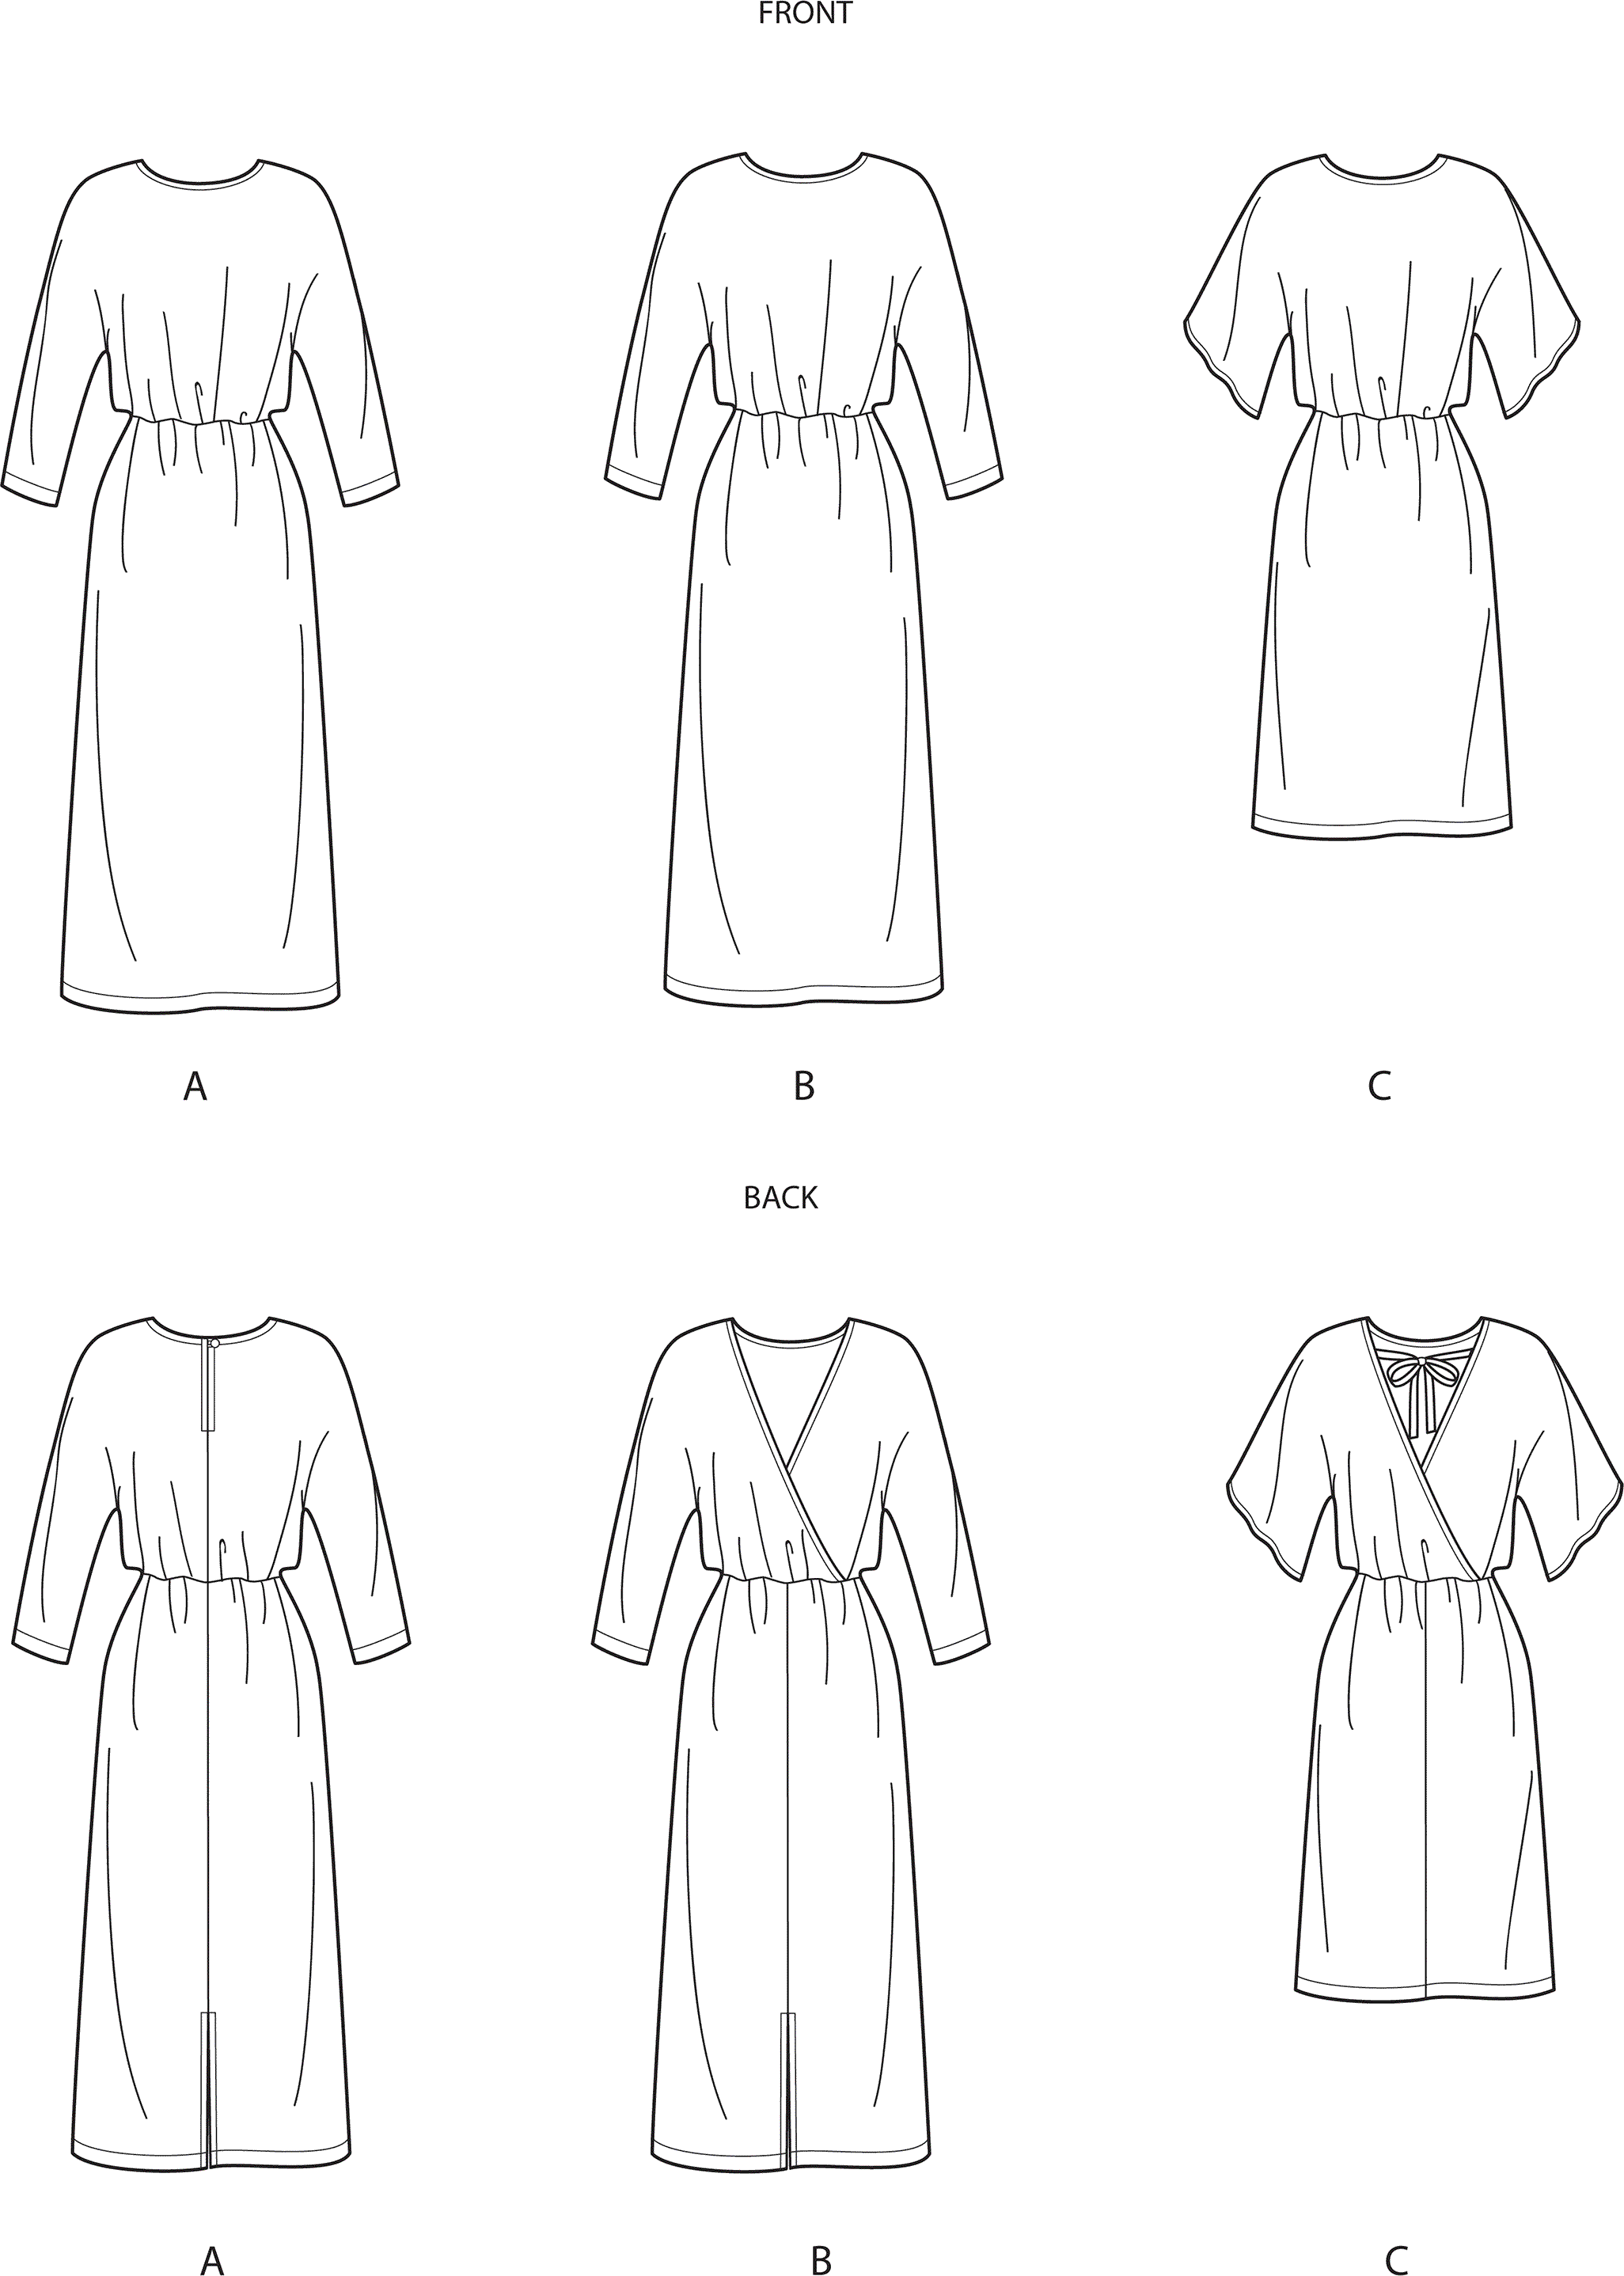 Simplicity Sewing Pattern S9010 Misses Dresses with Length Variation 9010 Line Art From Patternsandplains.com